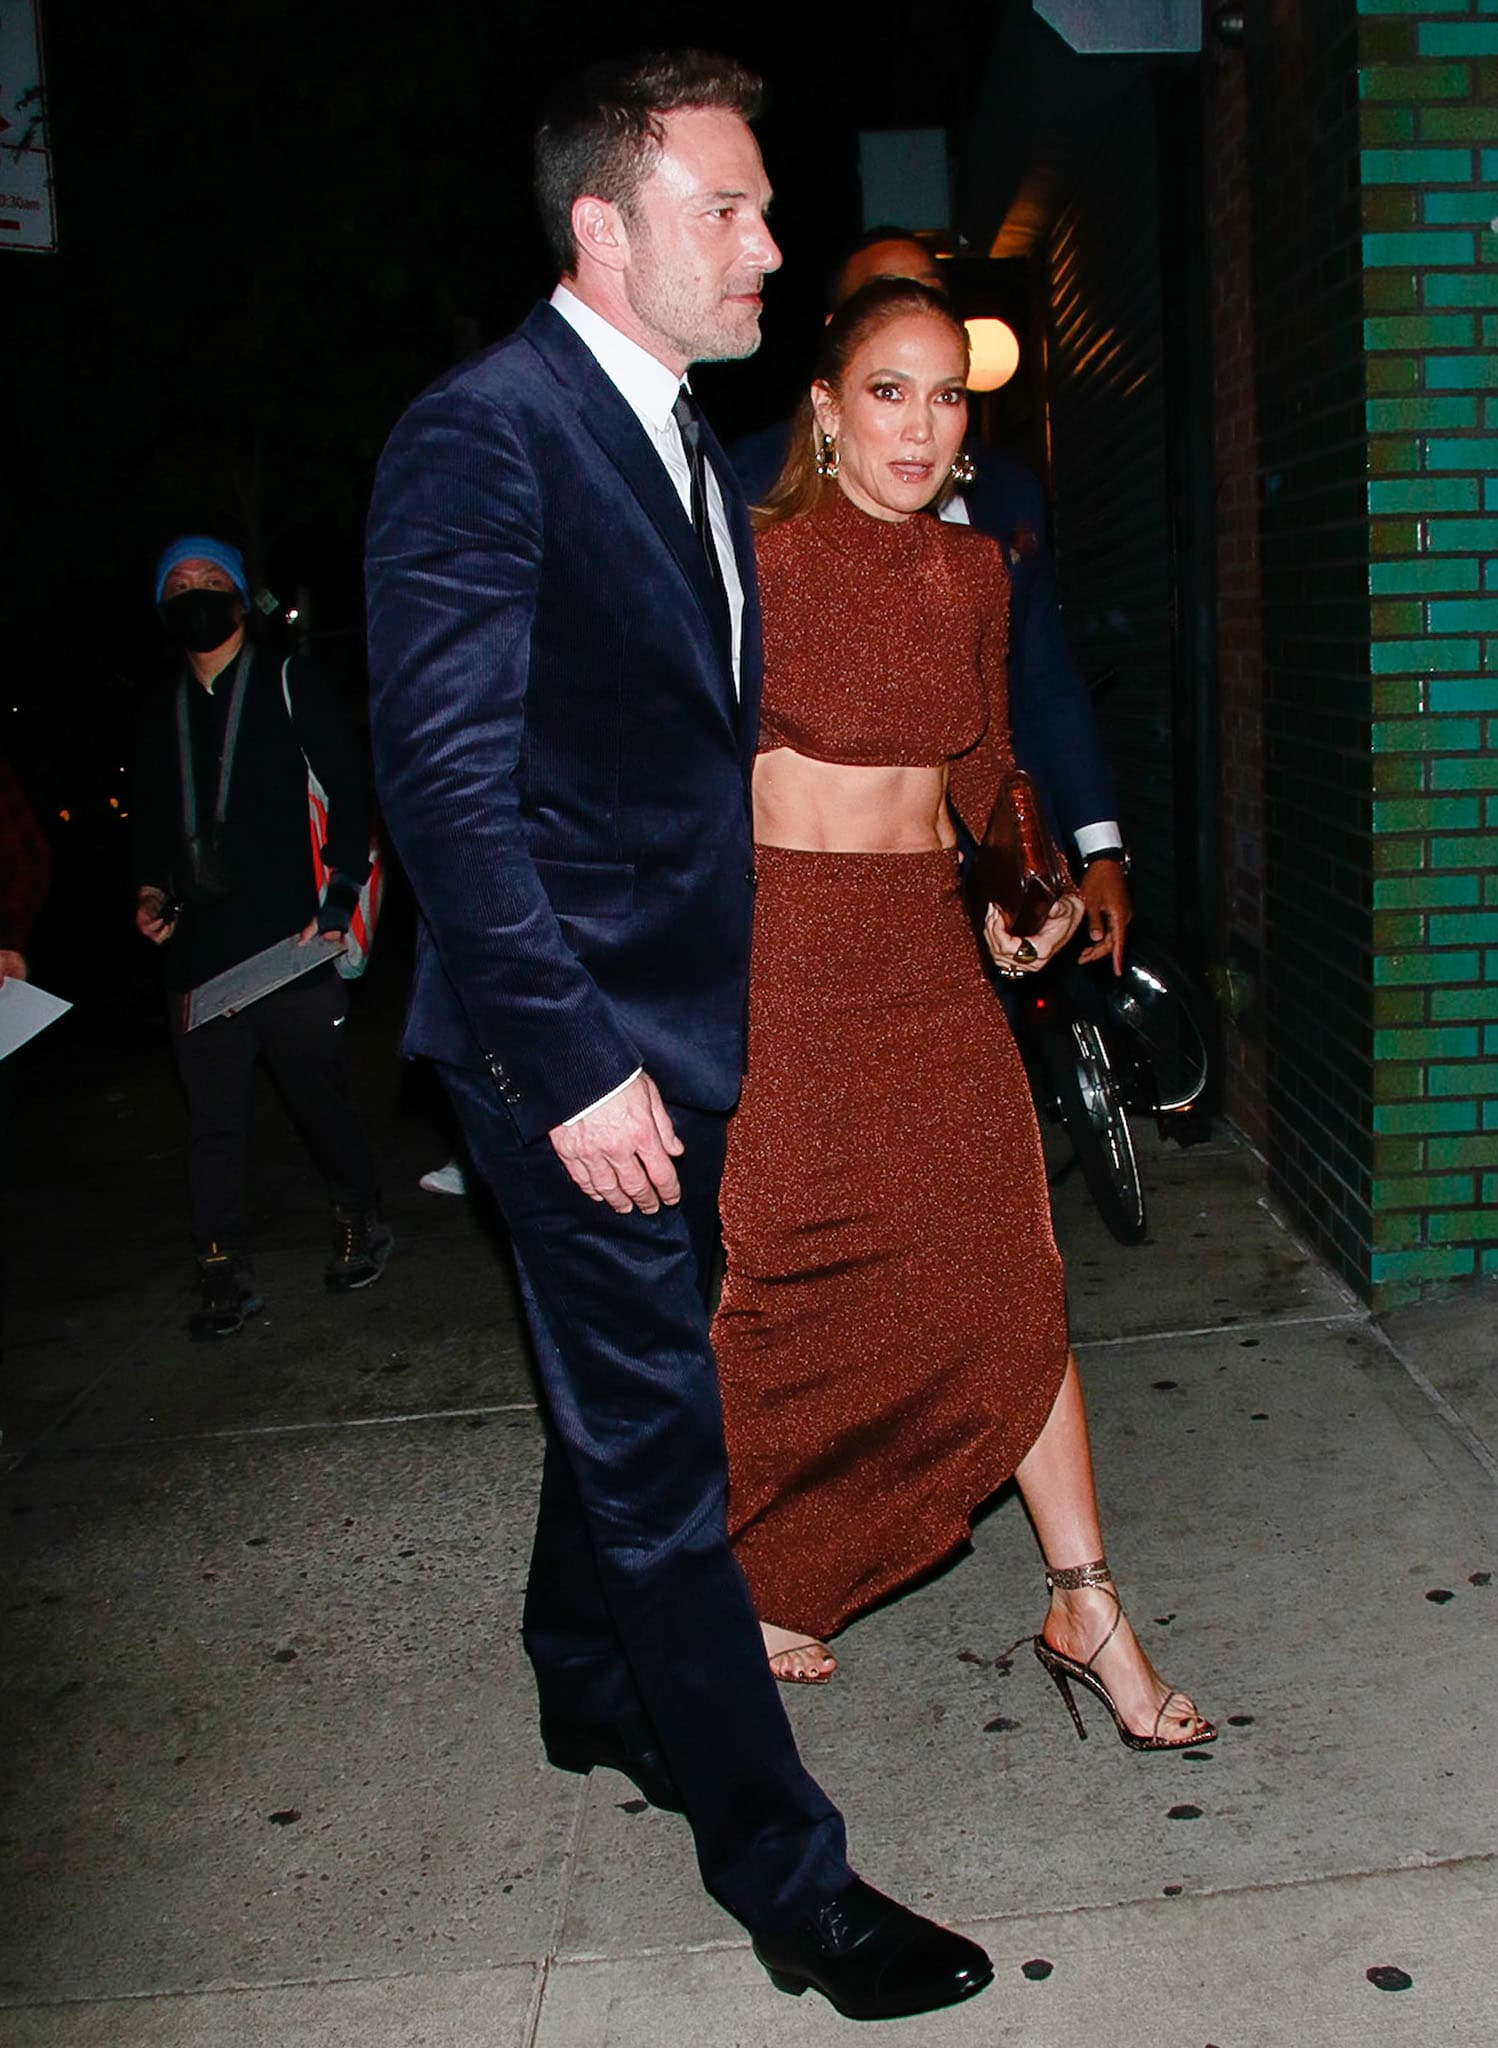 Jennifer Lopez shows support for her boyfriend as she accompanies him at the premiere of his latest movie